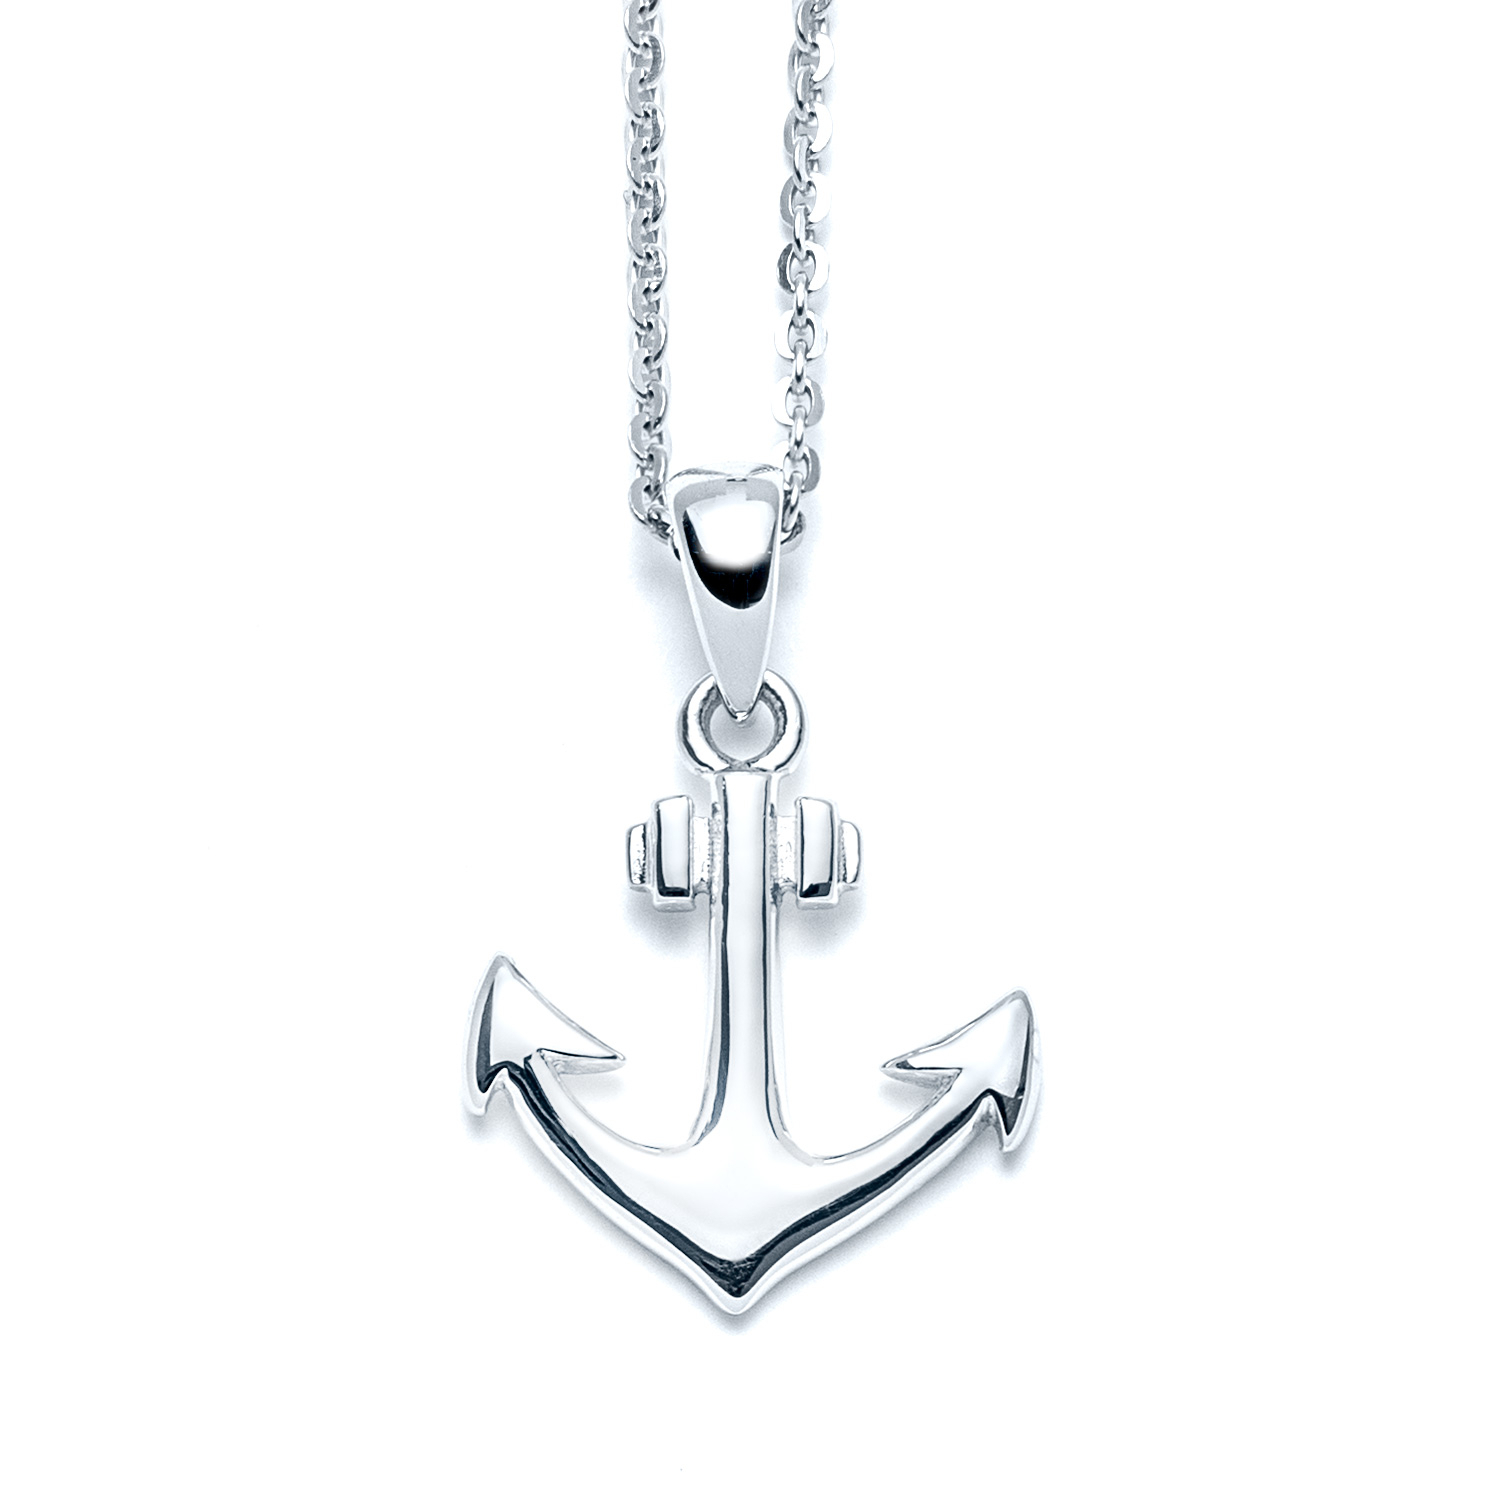 Classic Small Anchor Necklace Regarding Newest Classic Anchor Chain Necklaces (View 9 of 25)